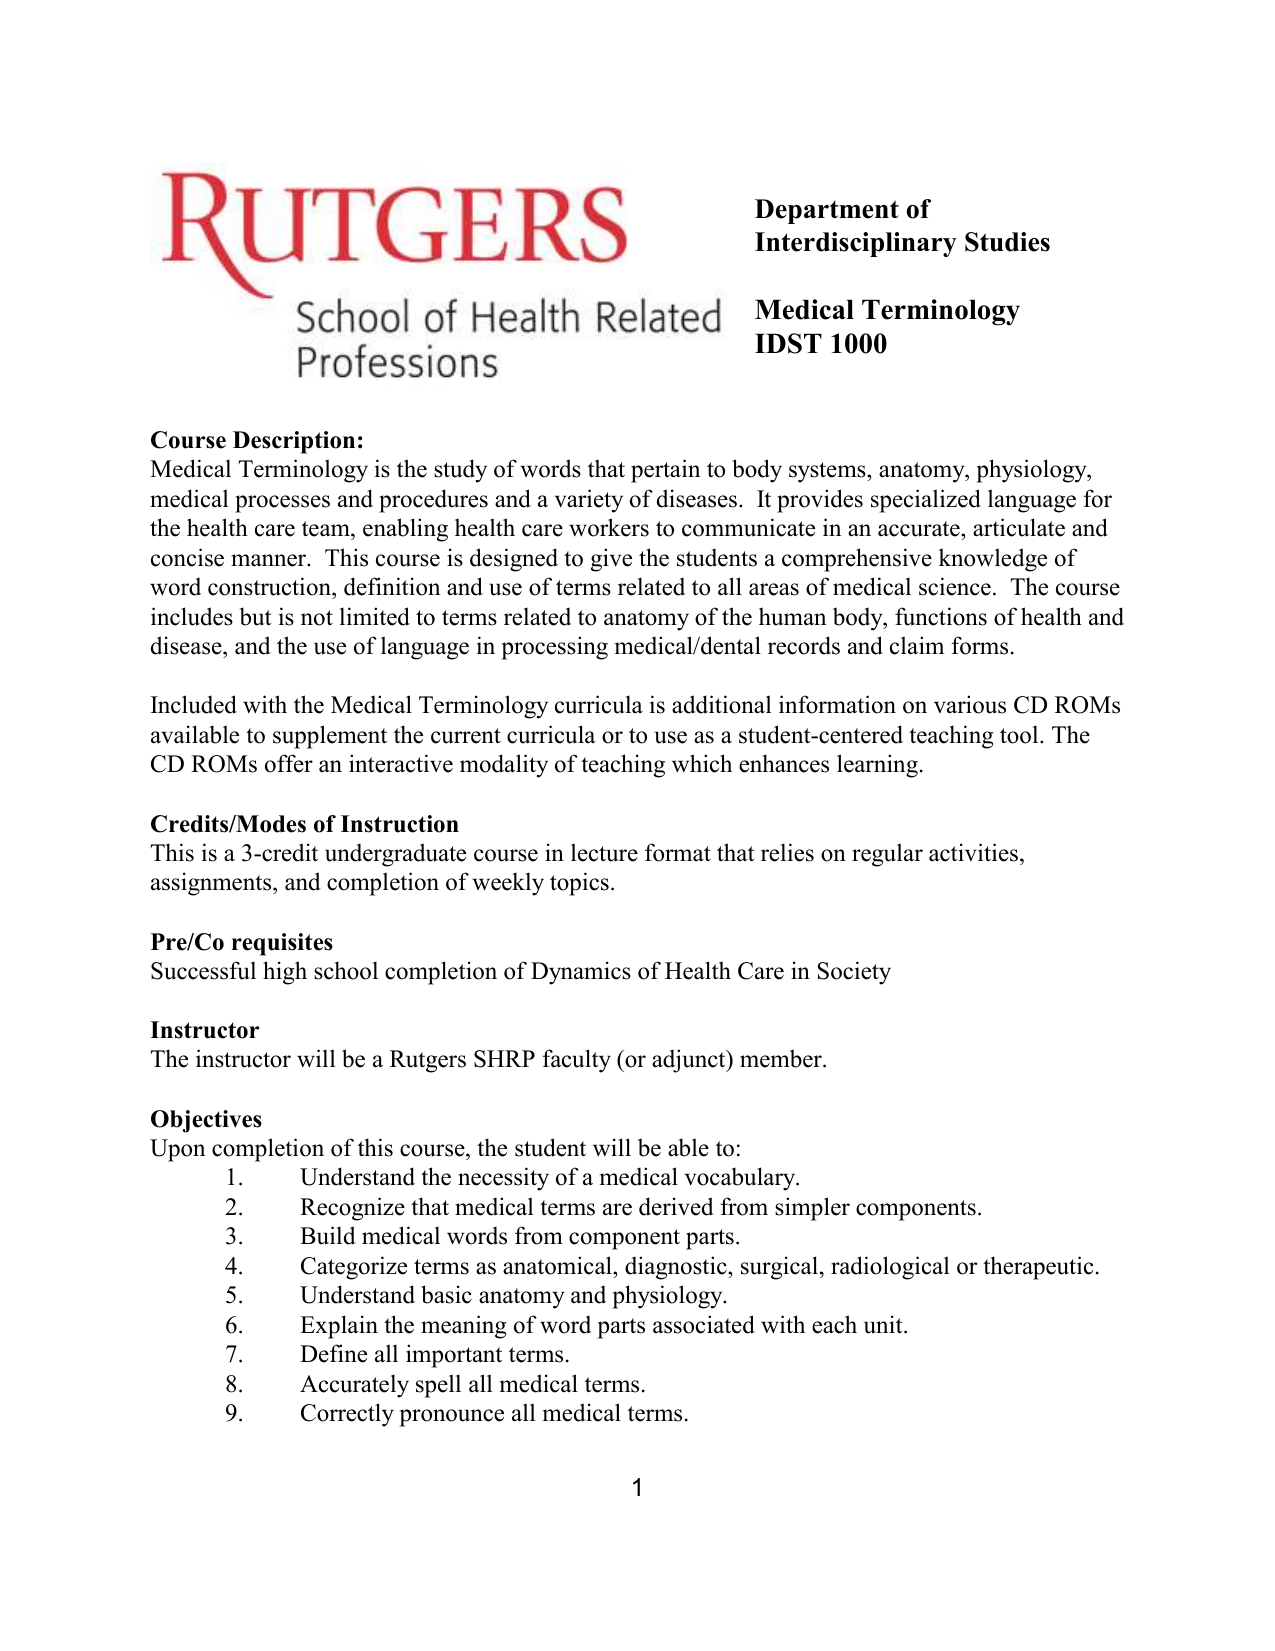 RU Word Medical Terminology - Rutgers: School of Health Related